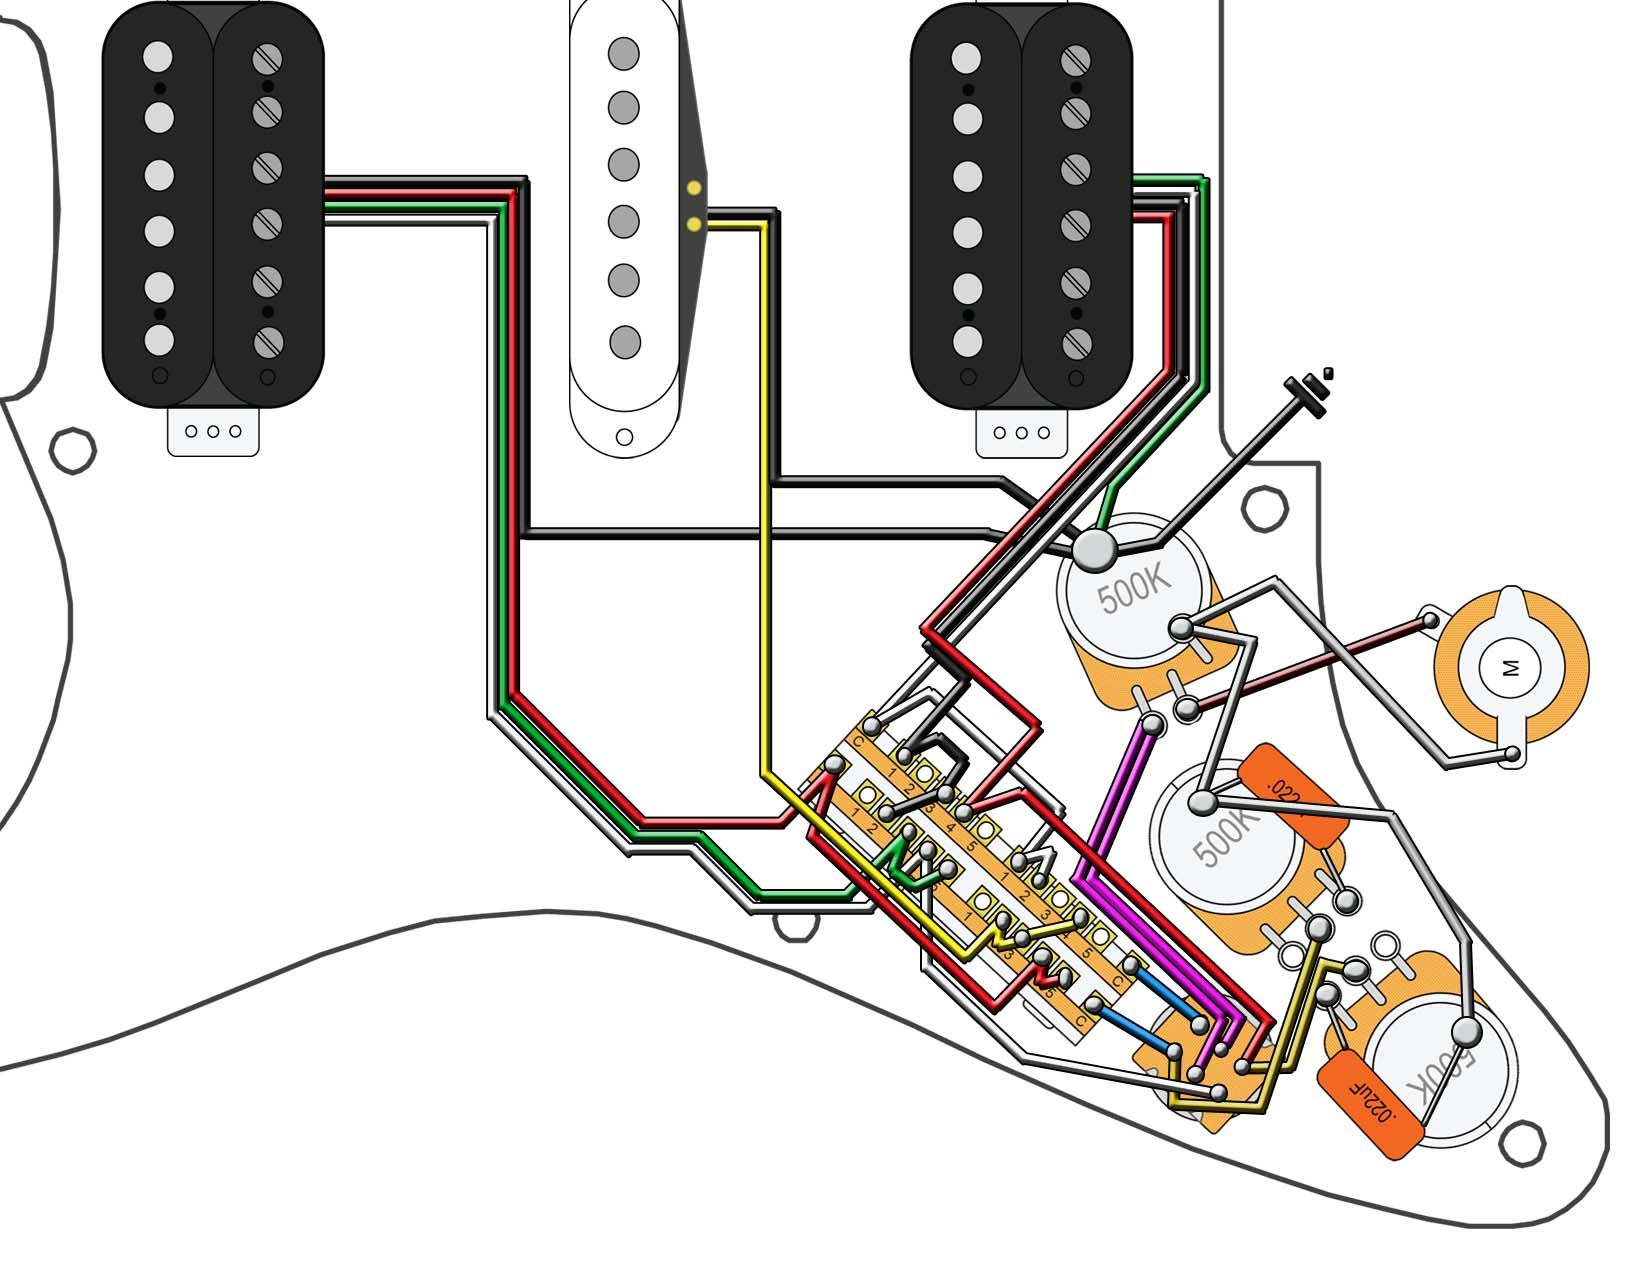 music the valley of dry bones new stratocaster hsh wiring diagram fio massa m sica [ 1650 x 1275 Pixel ]